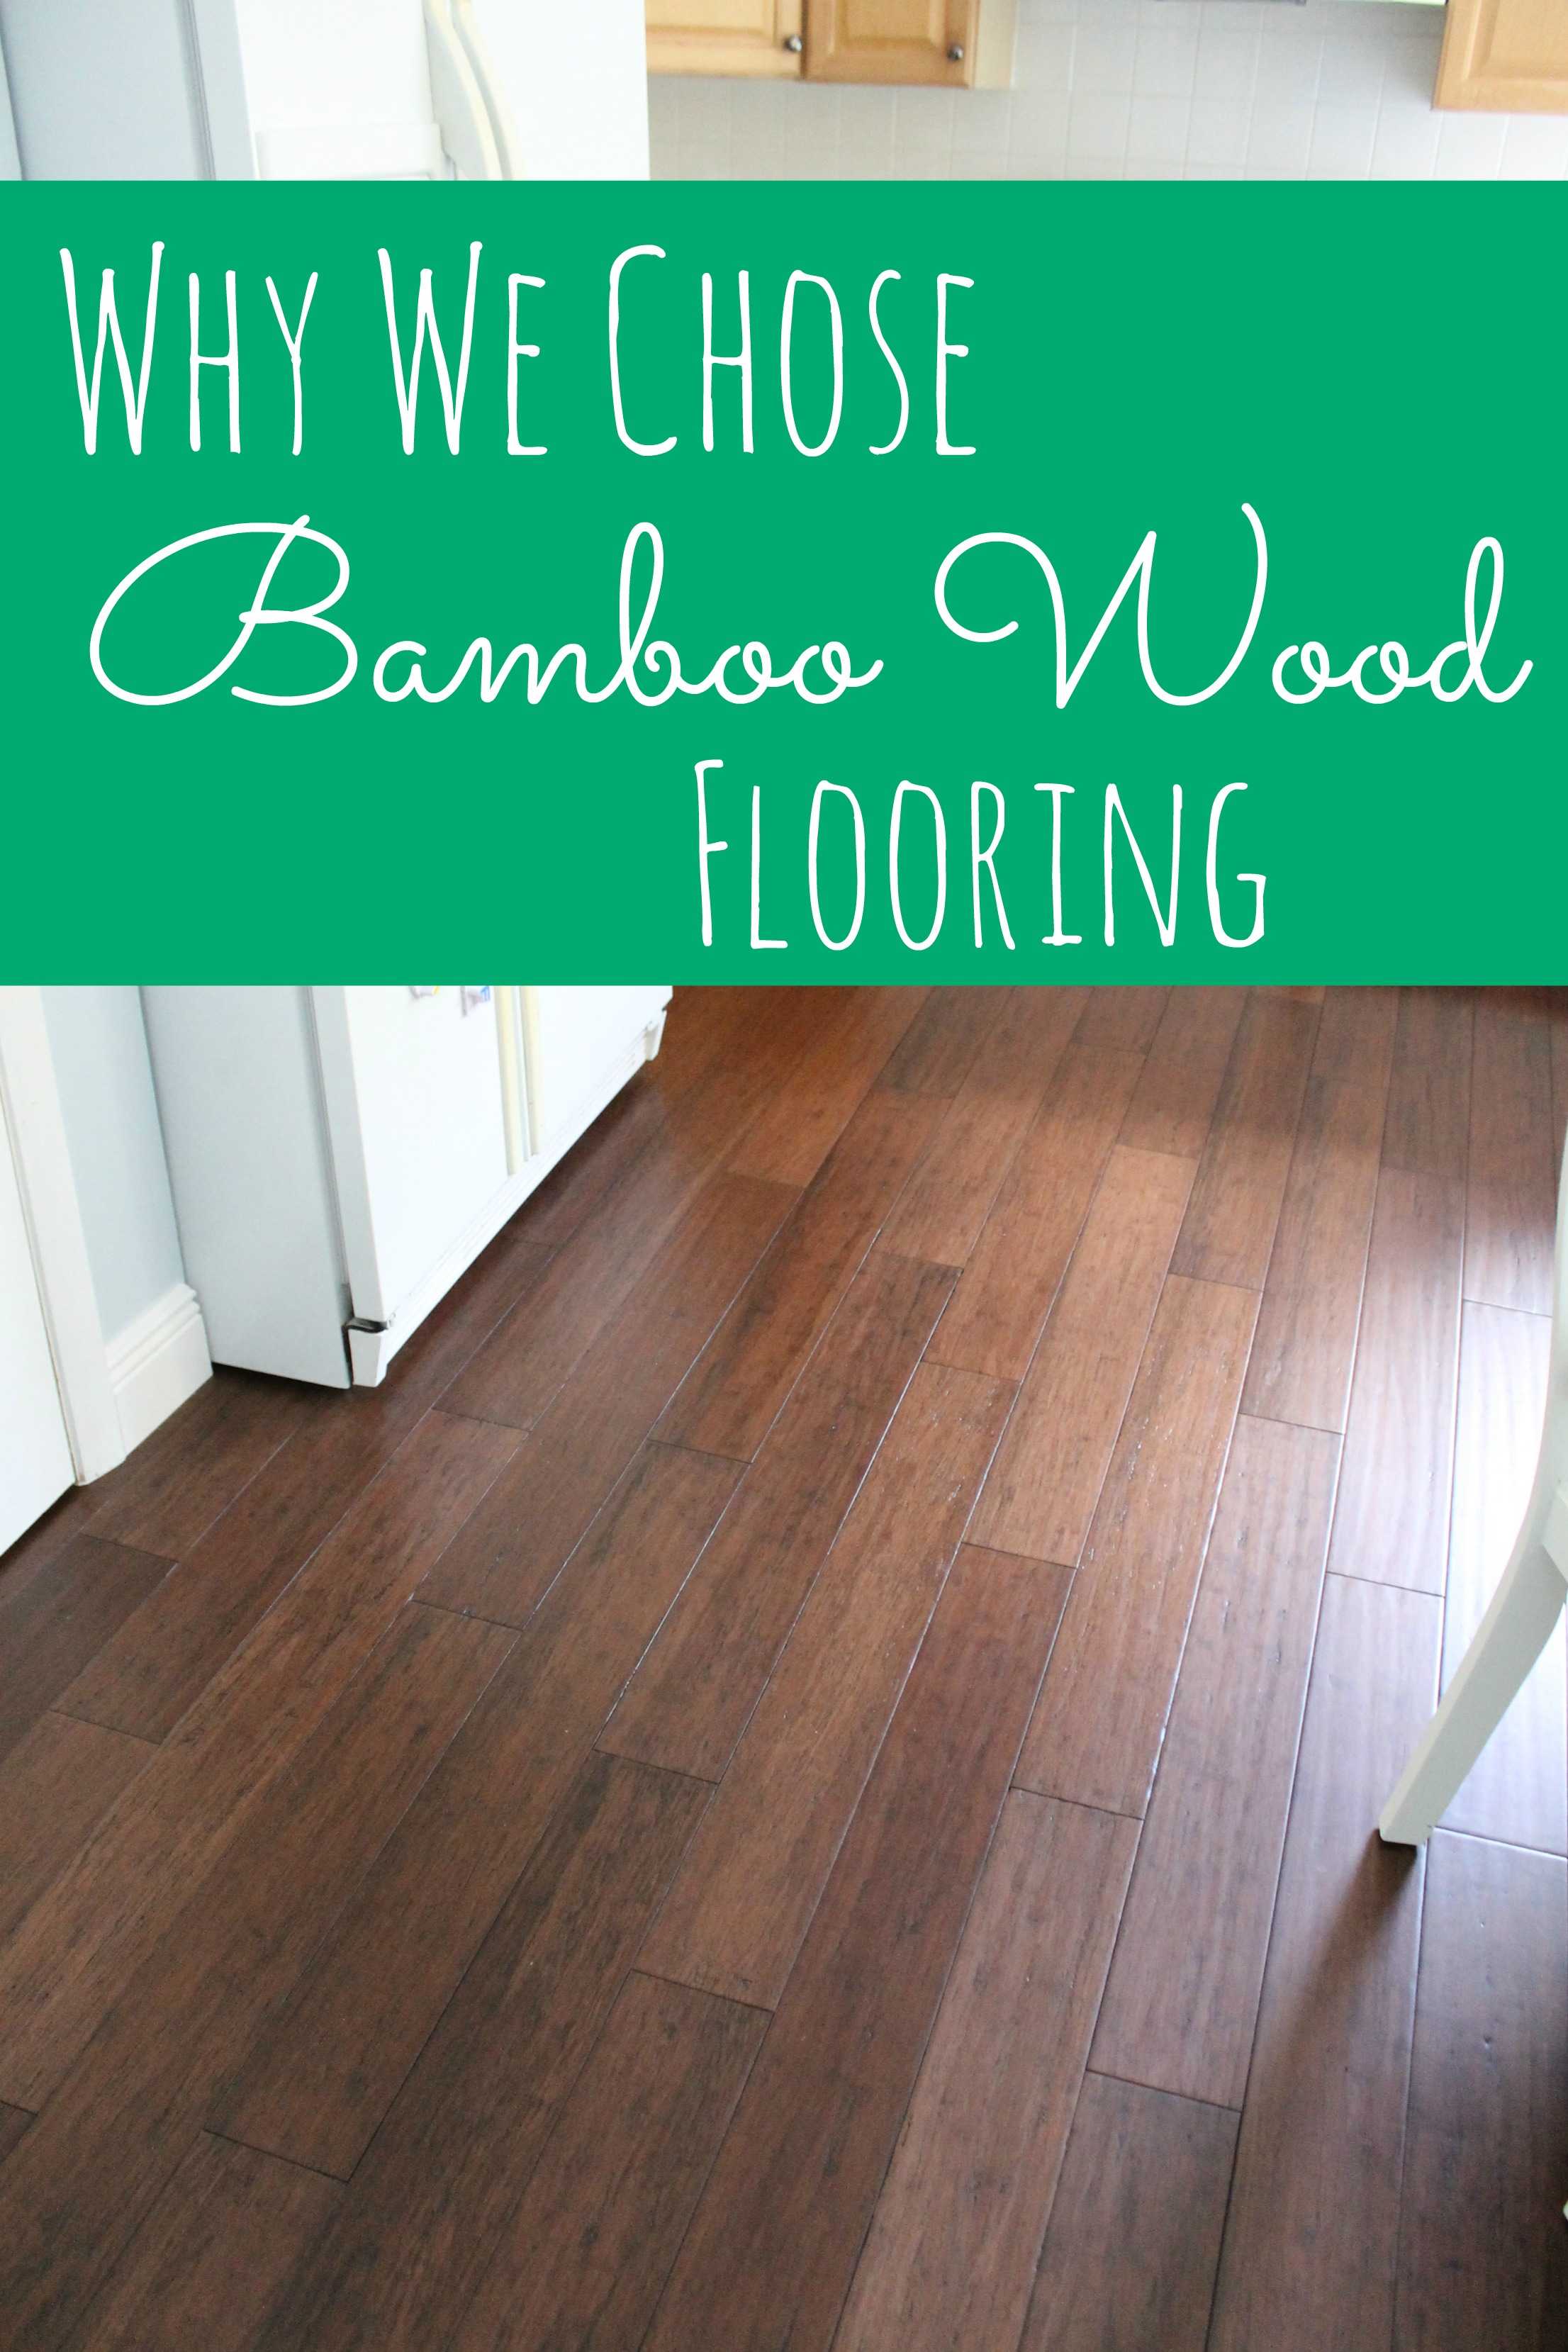 Strand Woven Bamboo Flooring Vs HardwoodThe Average Cost Of Bamboo - Does bamboo flooring scratch easily